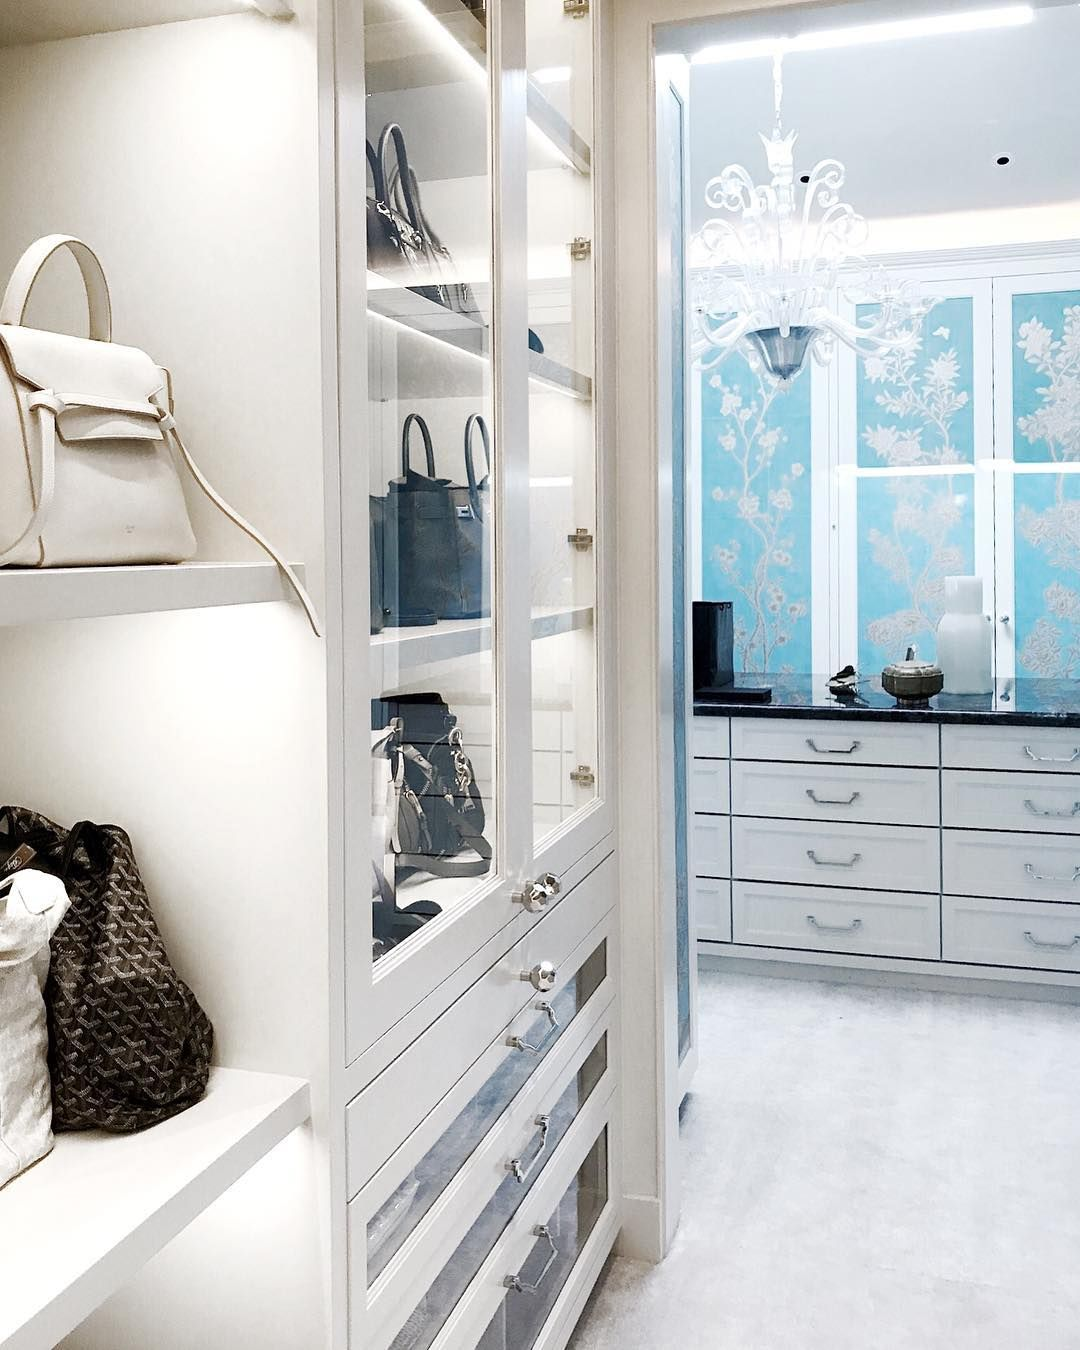 Blue and white with lots of light! Wallpaper doors are a